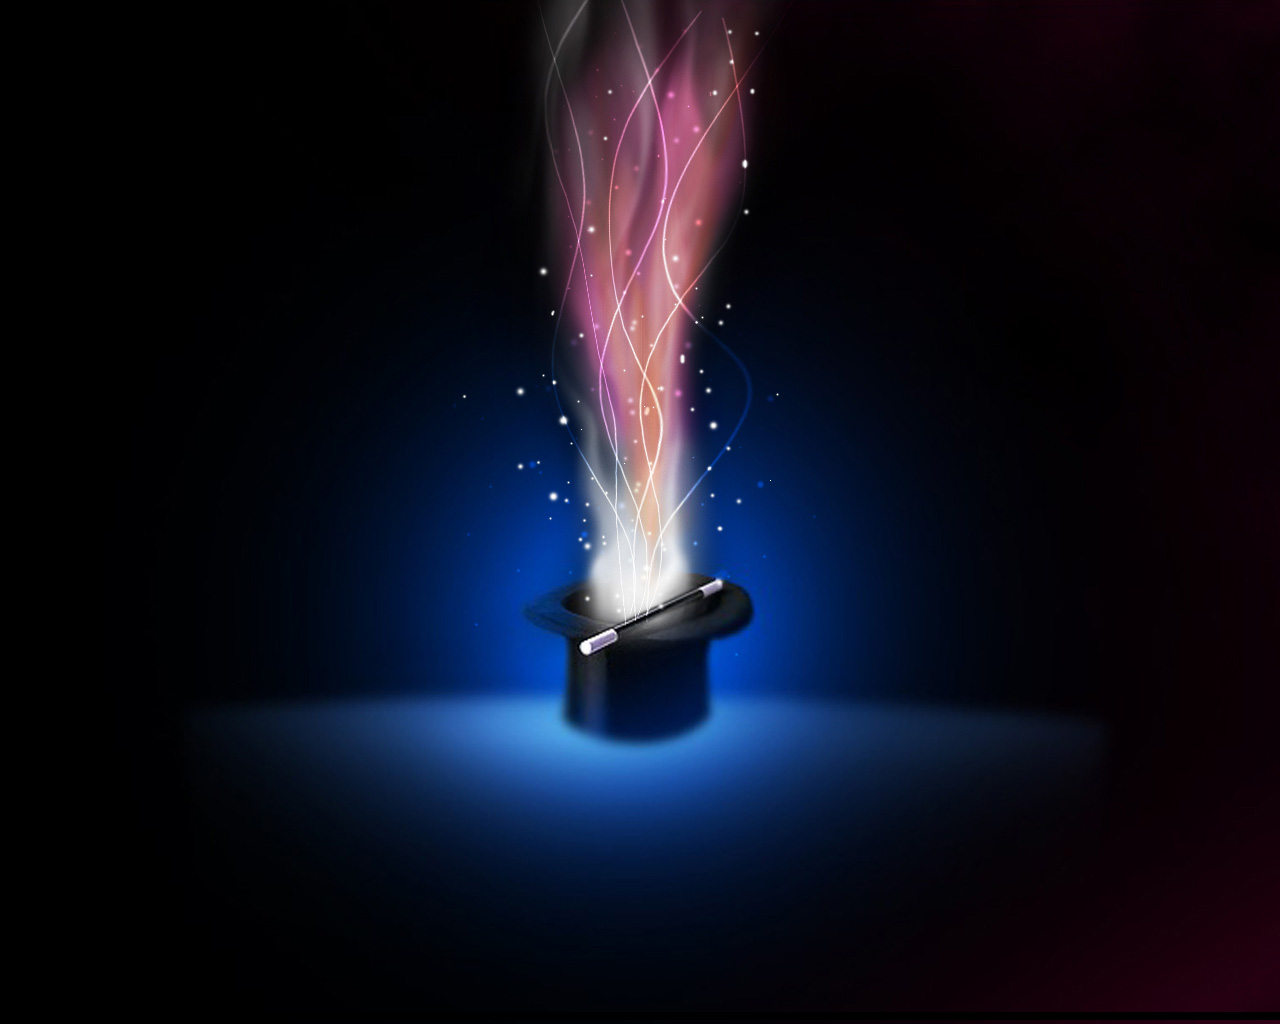 1000+ images about Magic on Pinterest | Wallpapers